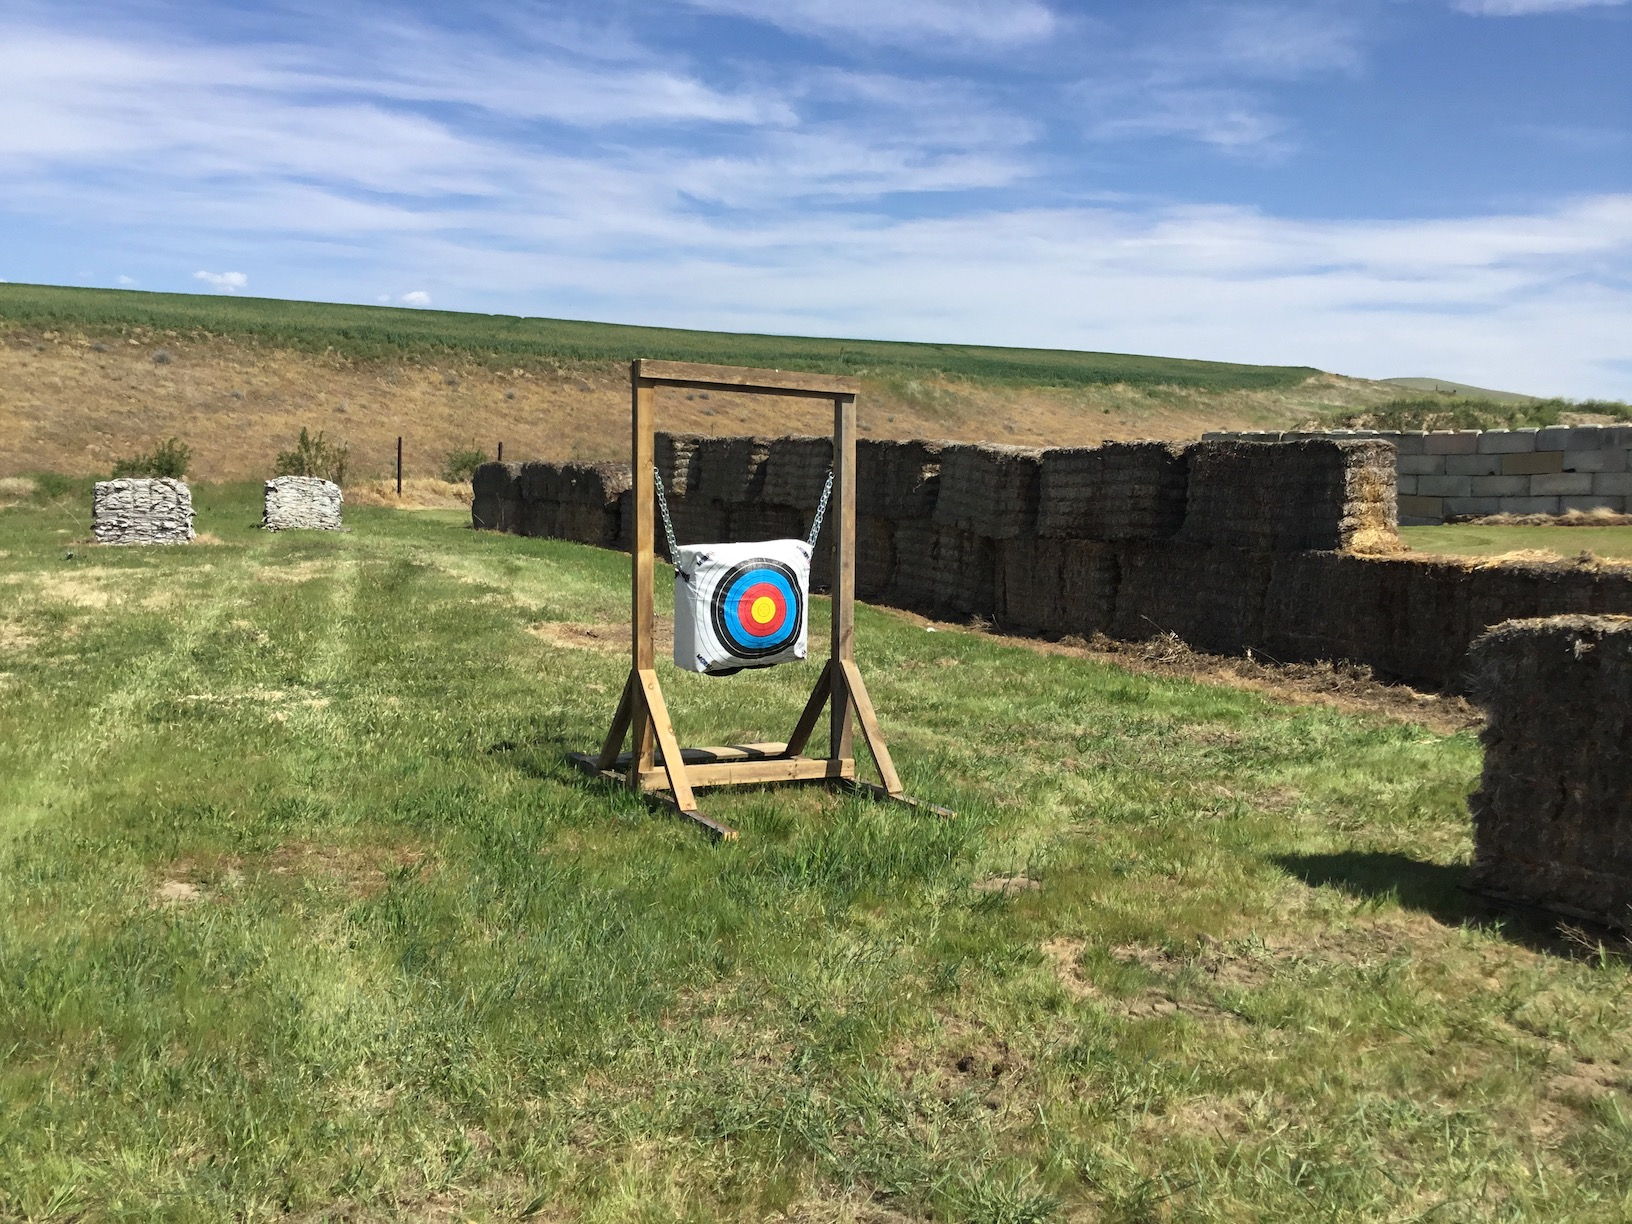 Archery Range Proof of Concept target